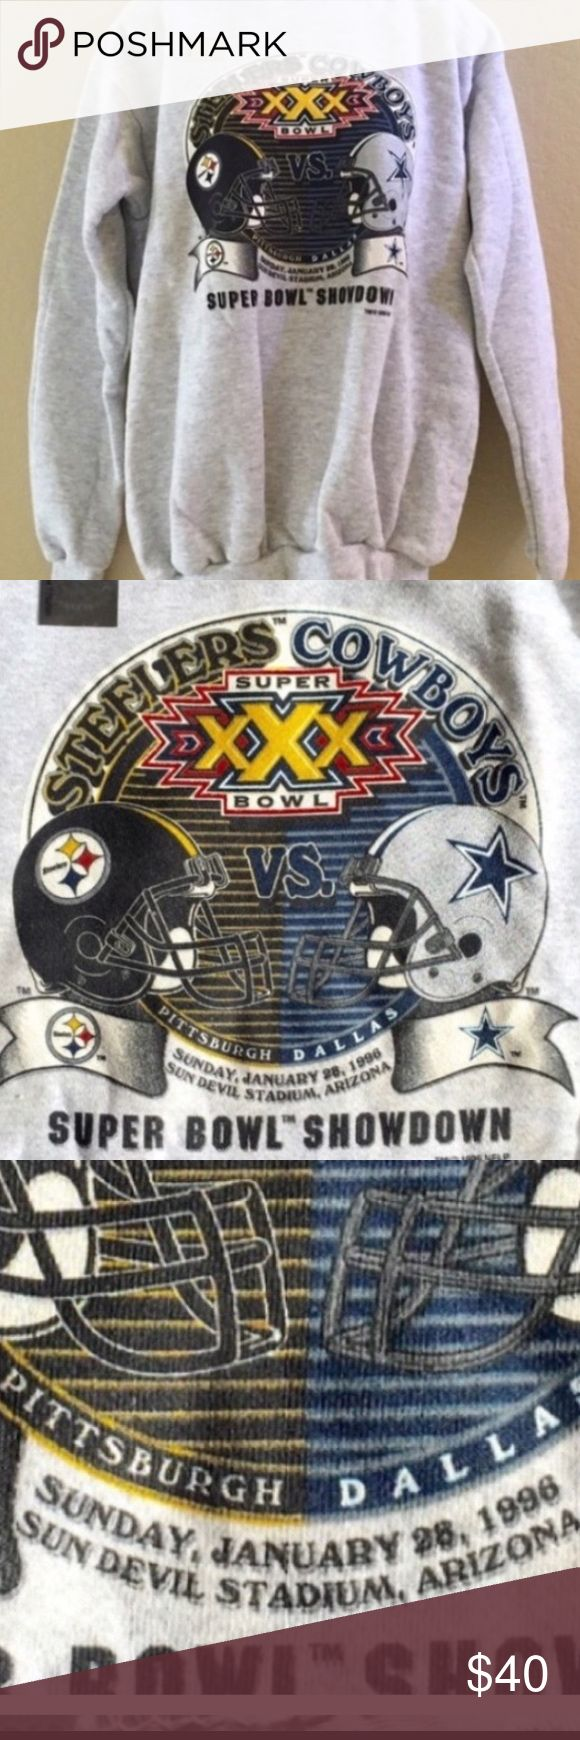 NWT! 1996 Super Bowl Steelers v Cowboys Sweatshirt Super Bowl XXX. Size Youth Large. Still has sticker on it. Never worn. Date and location has some shadowing. See 3rd pic Vintage Shirts & Tops Sweatshirts & Hoodies